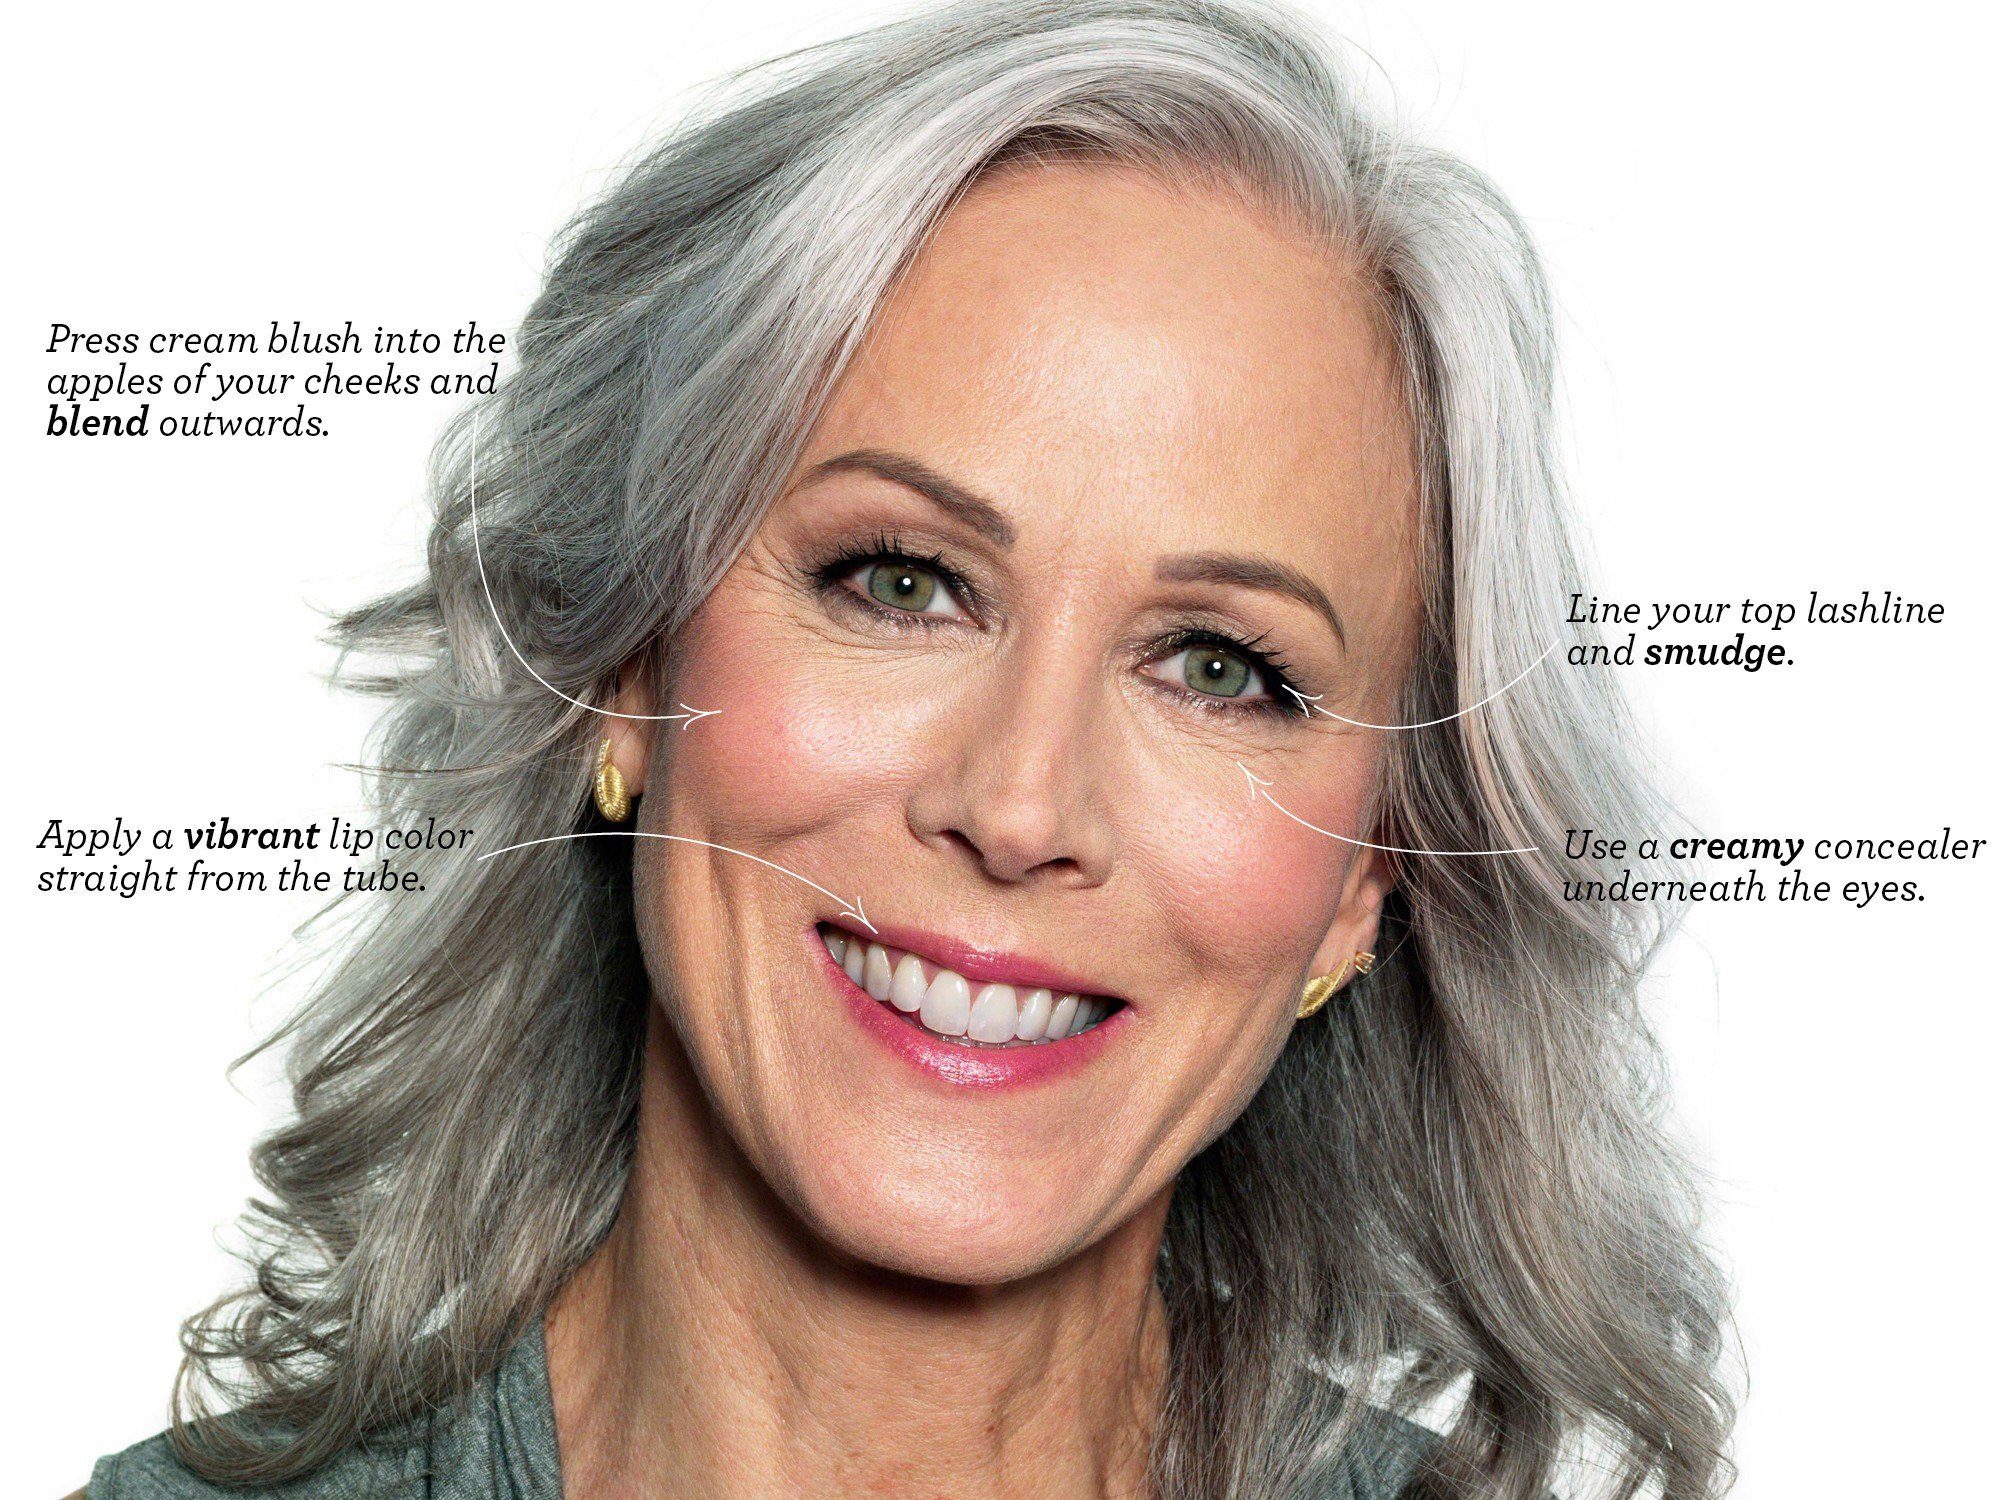 The Best Best Eyebrow Makeup For Gray Hair Makeup Vidalondon Pictures